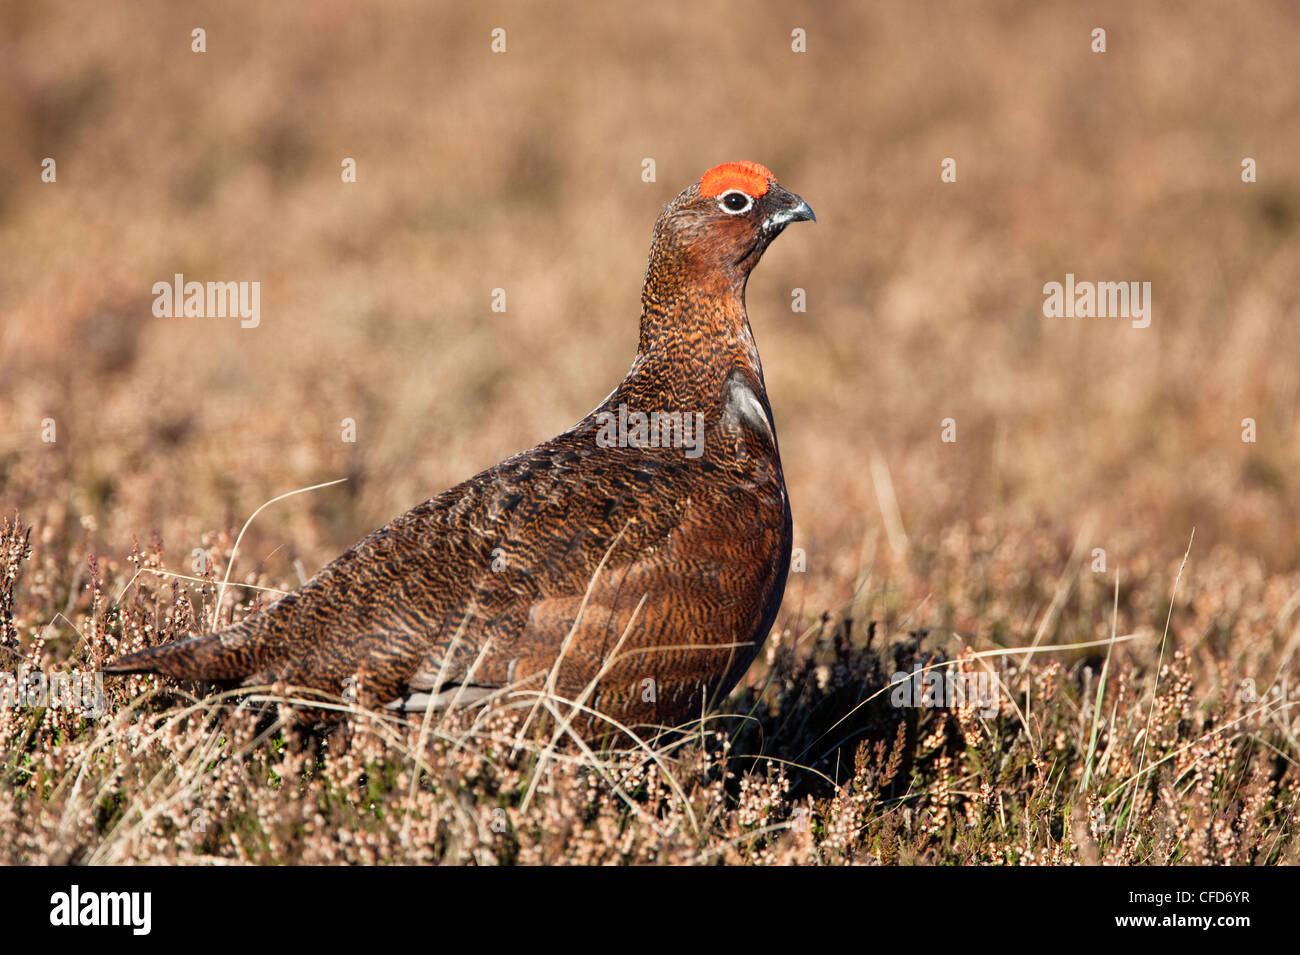 Red grouse (Lagopus lagopus), male, in heather, County Durham, England, United Kingdom, Europe - Stock Image